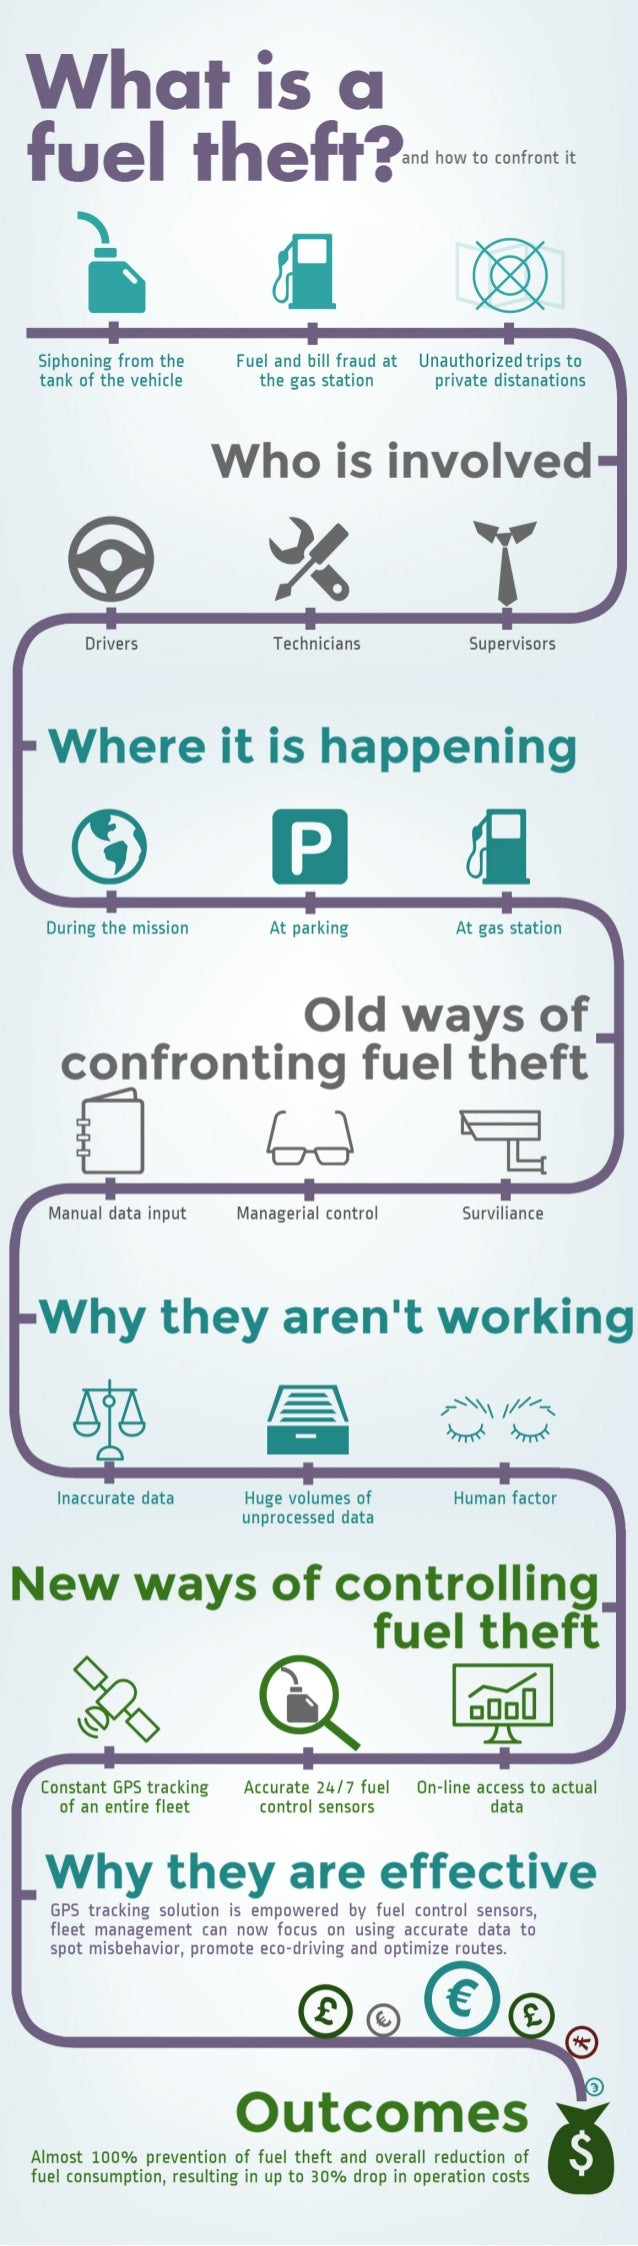 Problem of fuel theft - and how to counter it